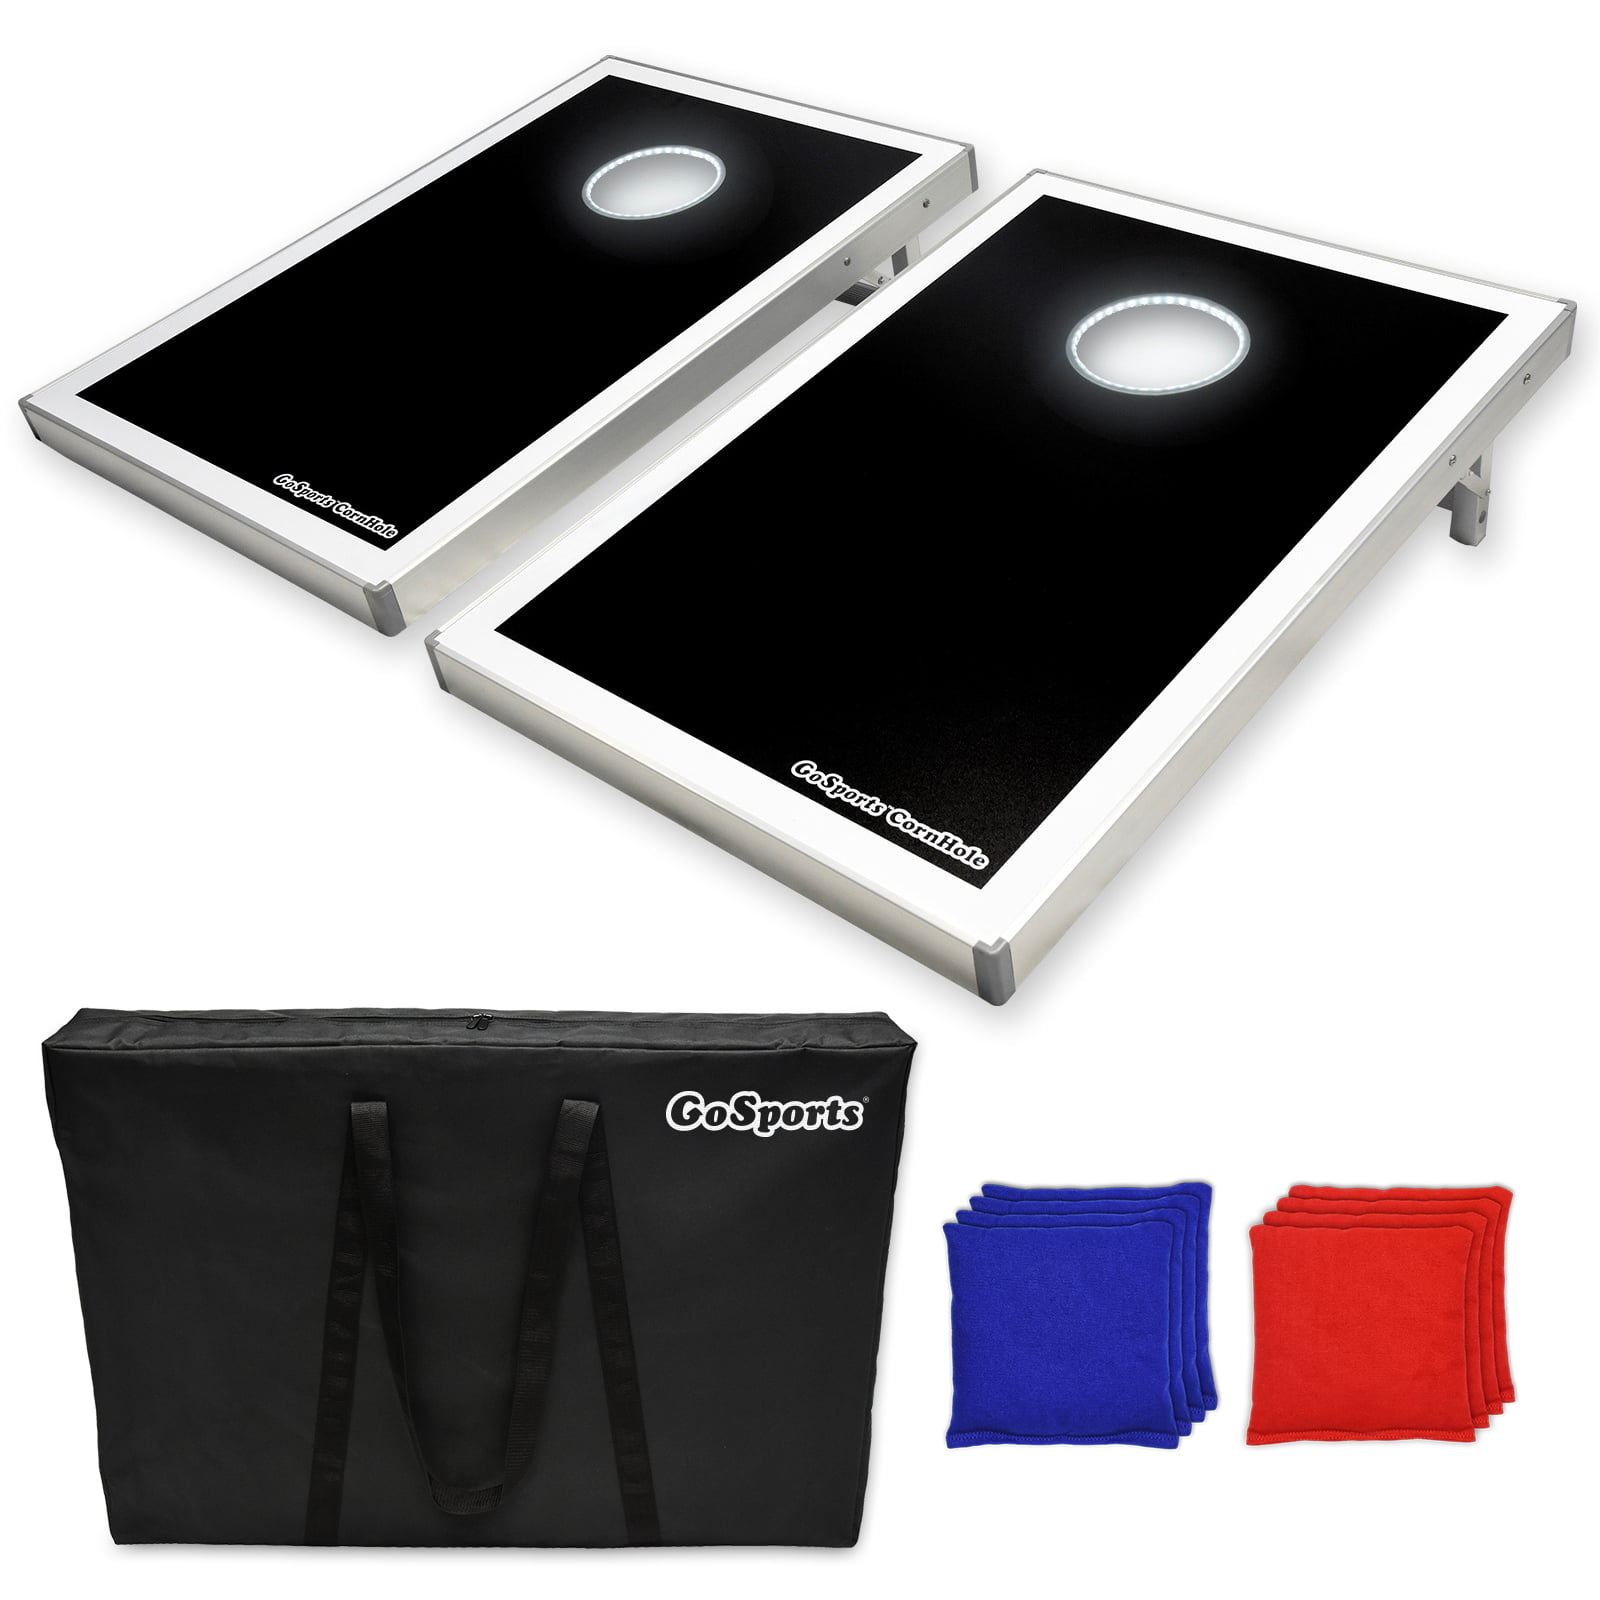 GoSports Foldable LED Light Up Cornhole Boards Set, 3'x2' Tailgate Size w  6 Beanbags and Portable Carry Case by P&P Imports LLC